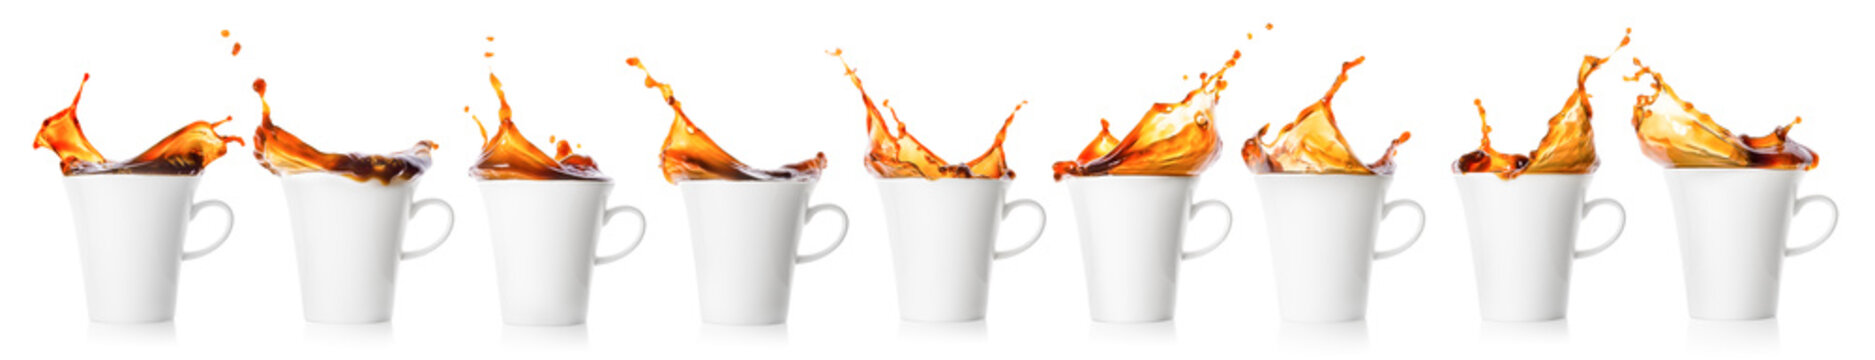 Coffee splash in white cup